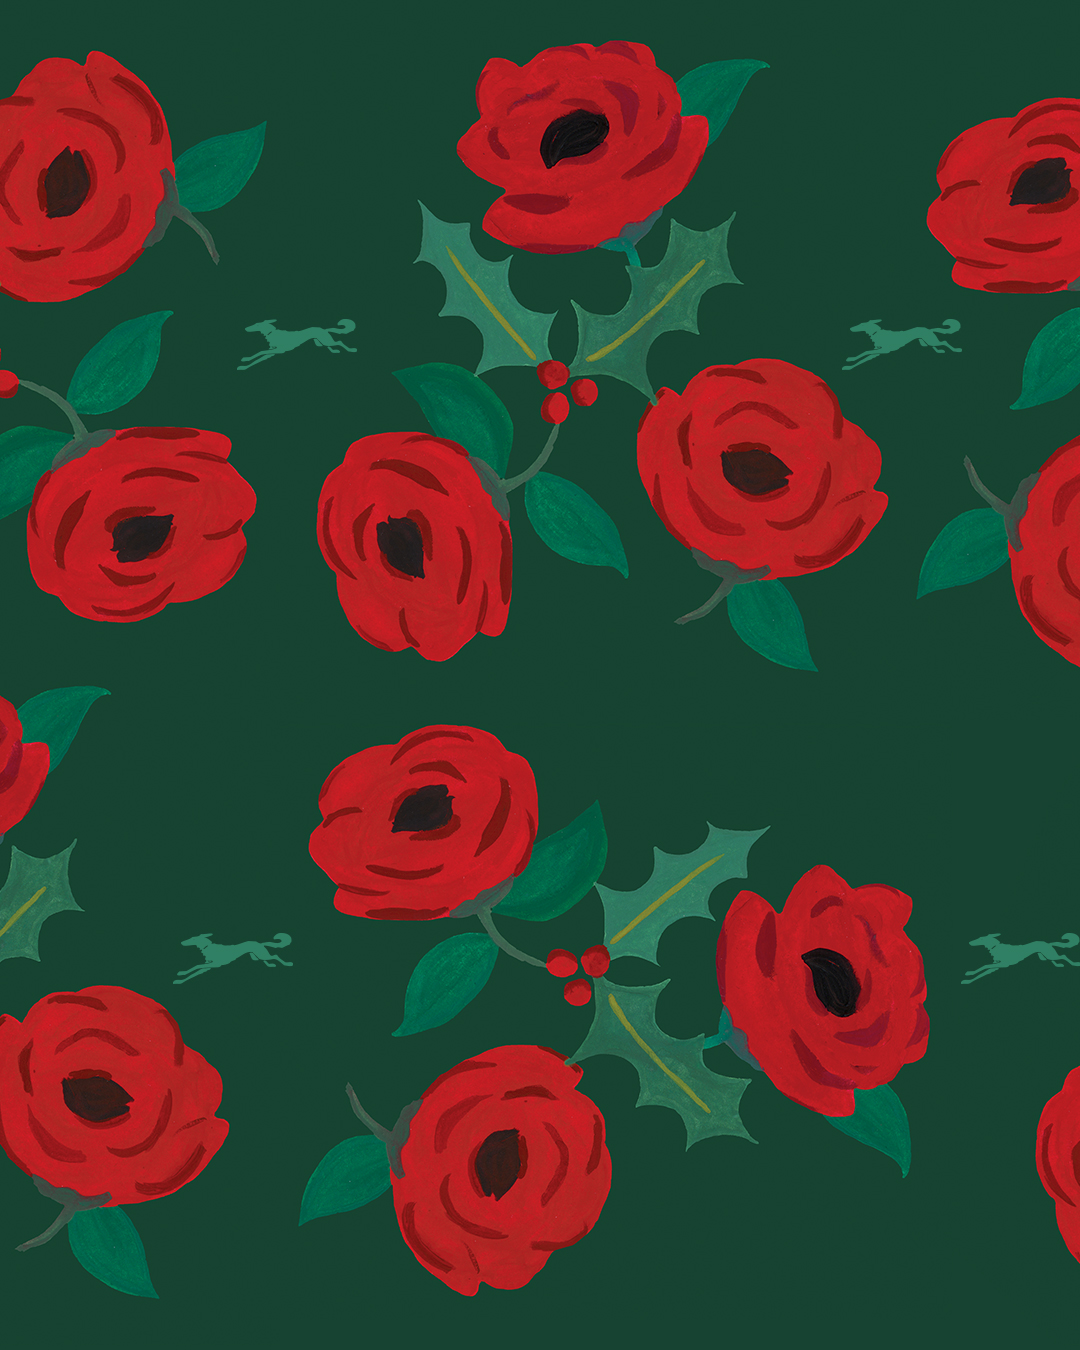 Gouache painted roses for a wrapping paper design.